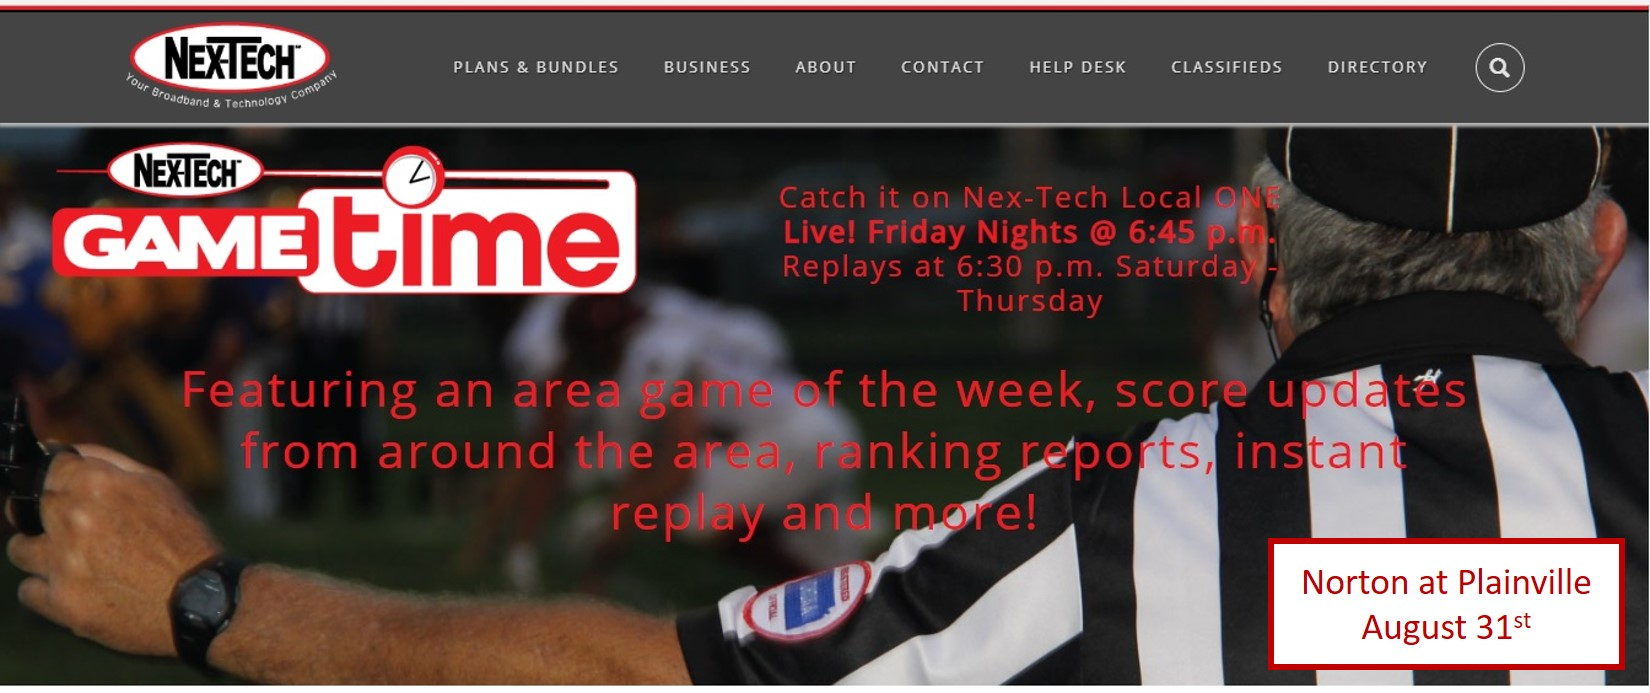 Nex Tech Local One To Feature This Weeku0027s Norton At Plainville Game.